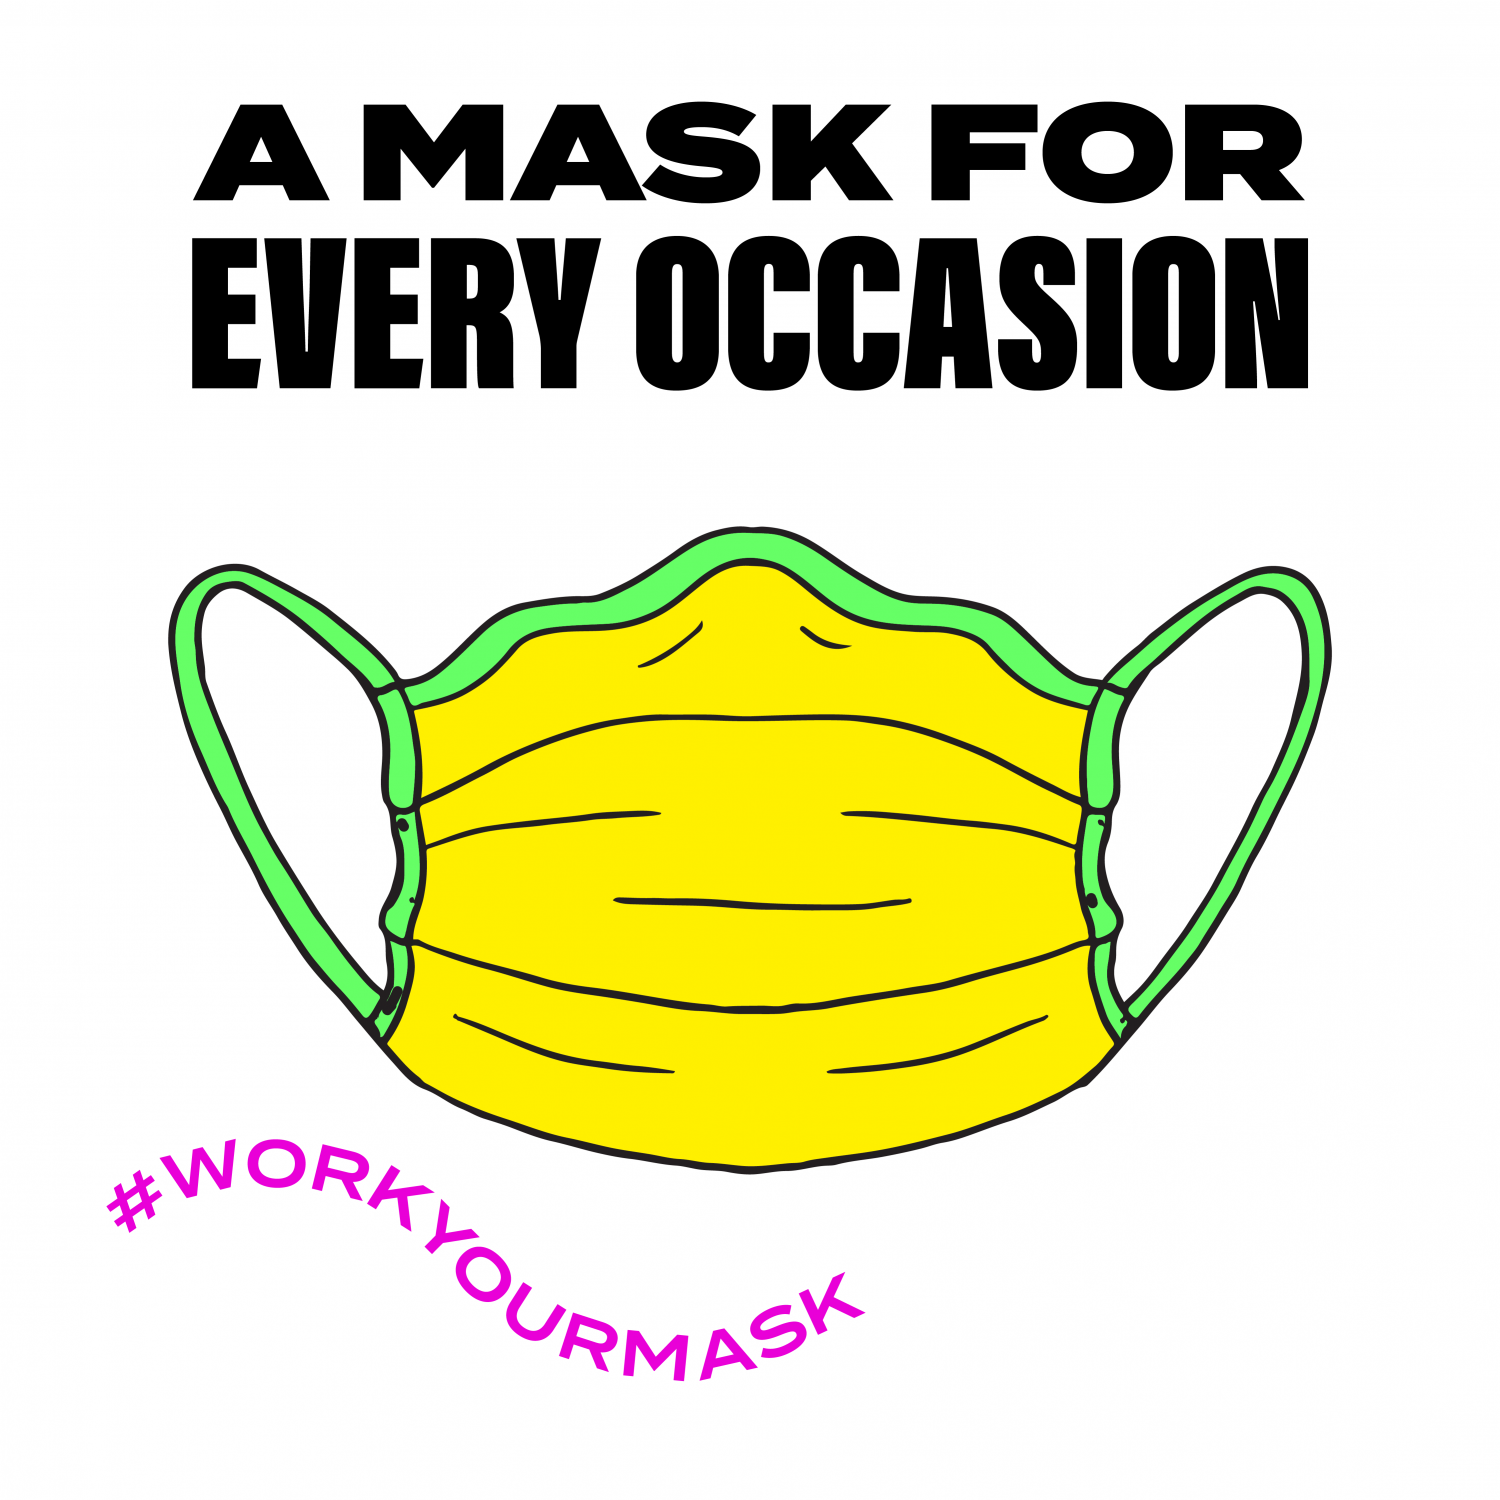 Masks For Every Occasion